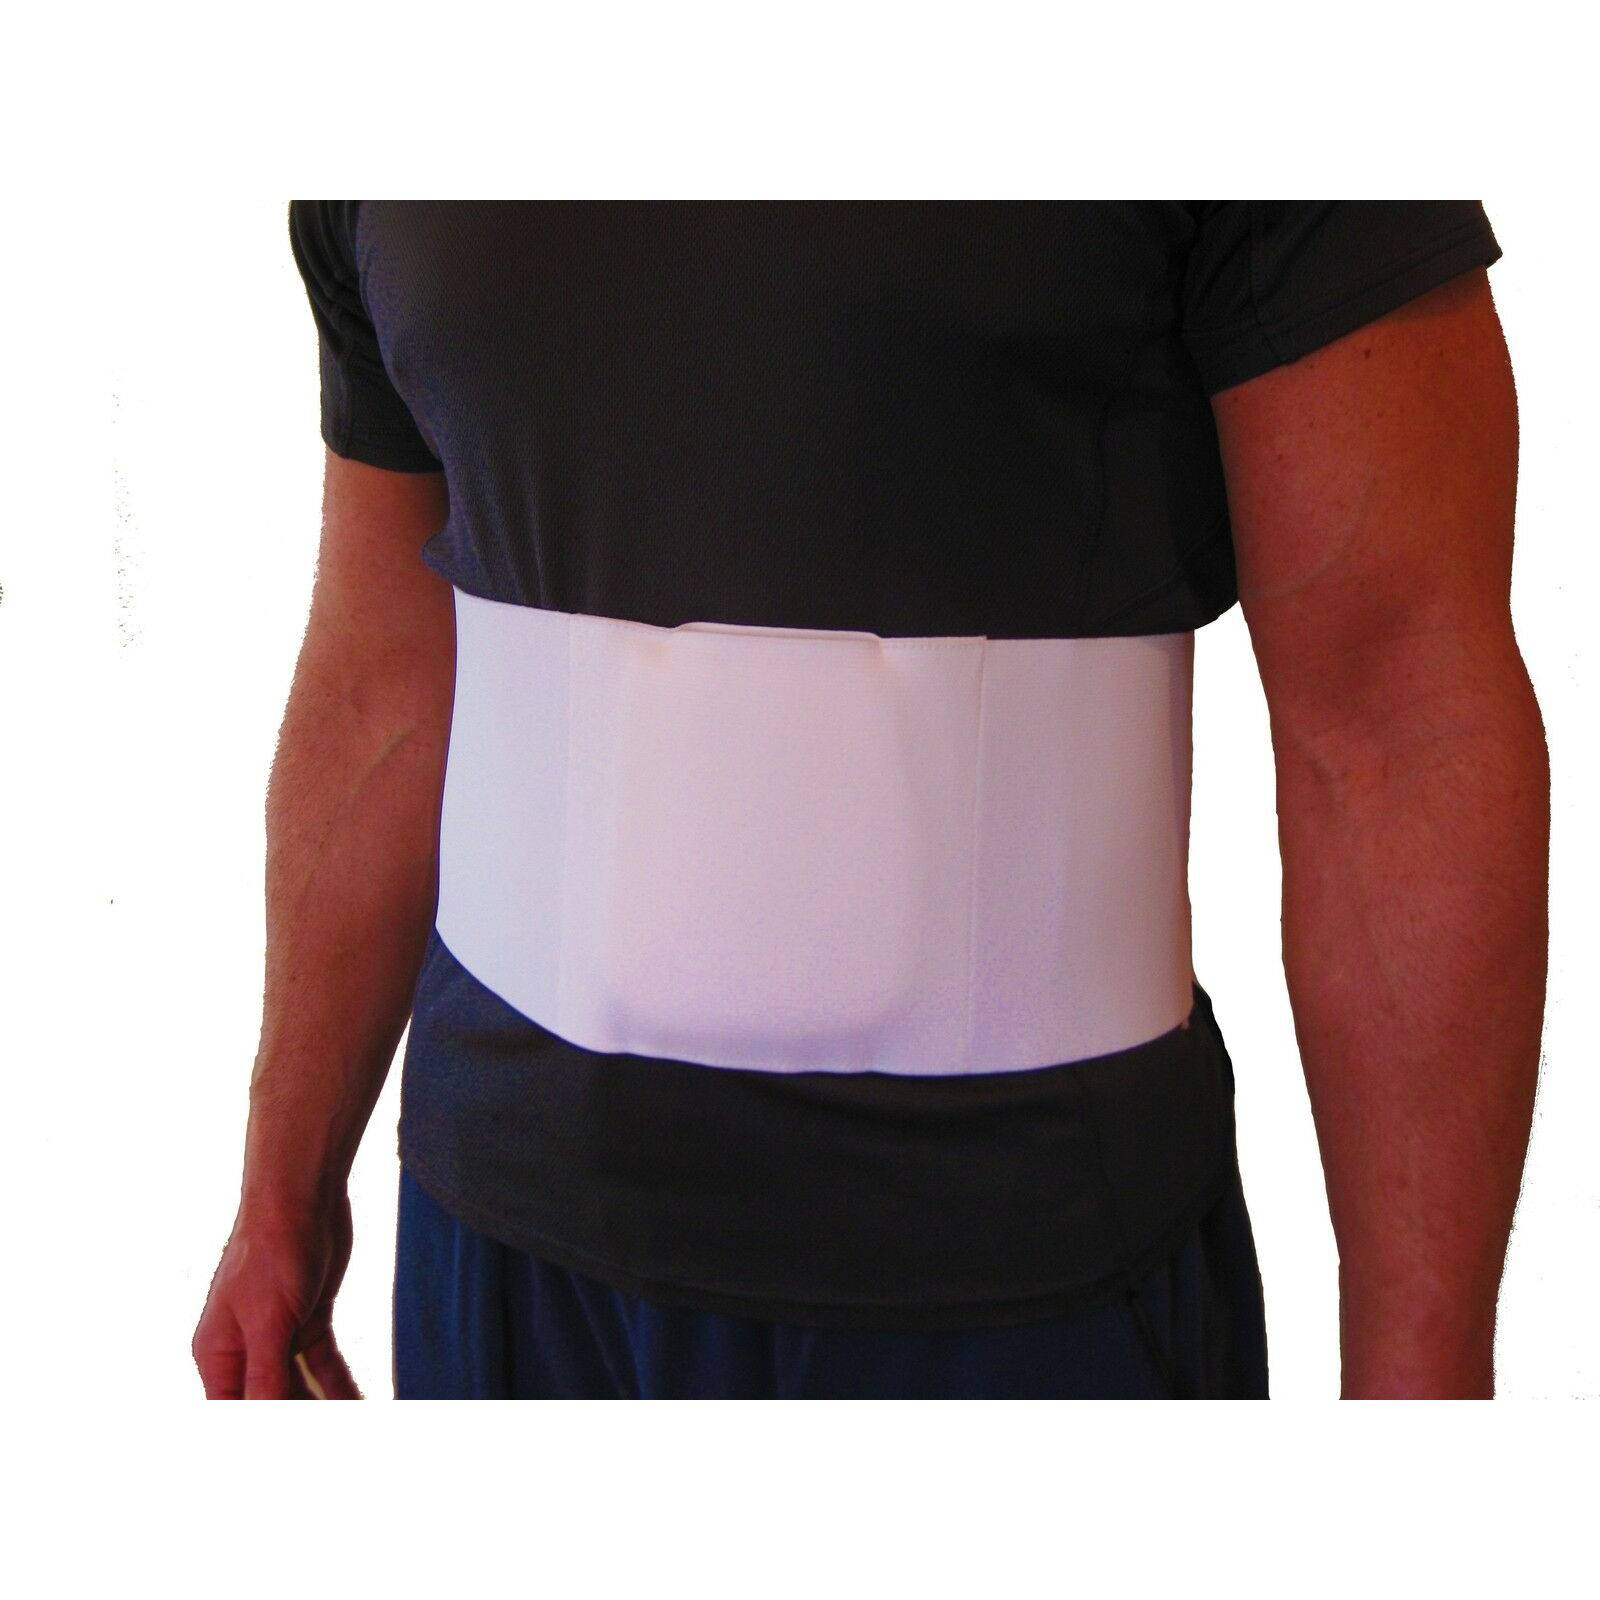 "FlexaMed Umbilical Hernia Belt 6"" Wide 